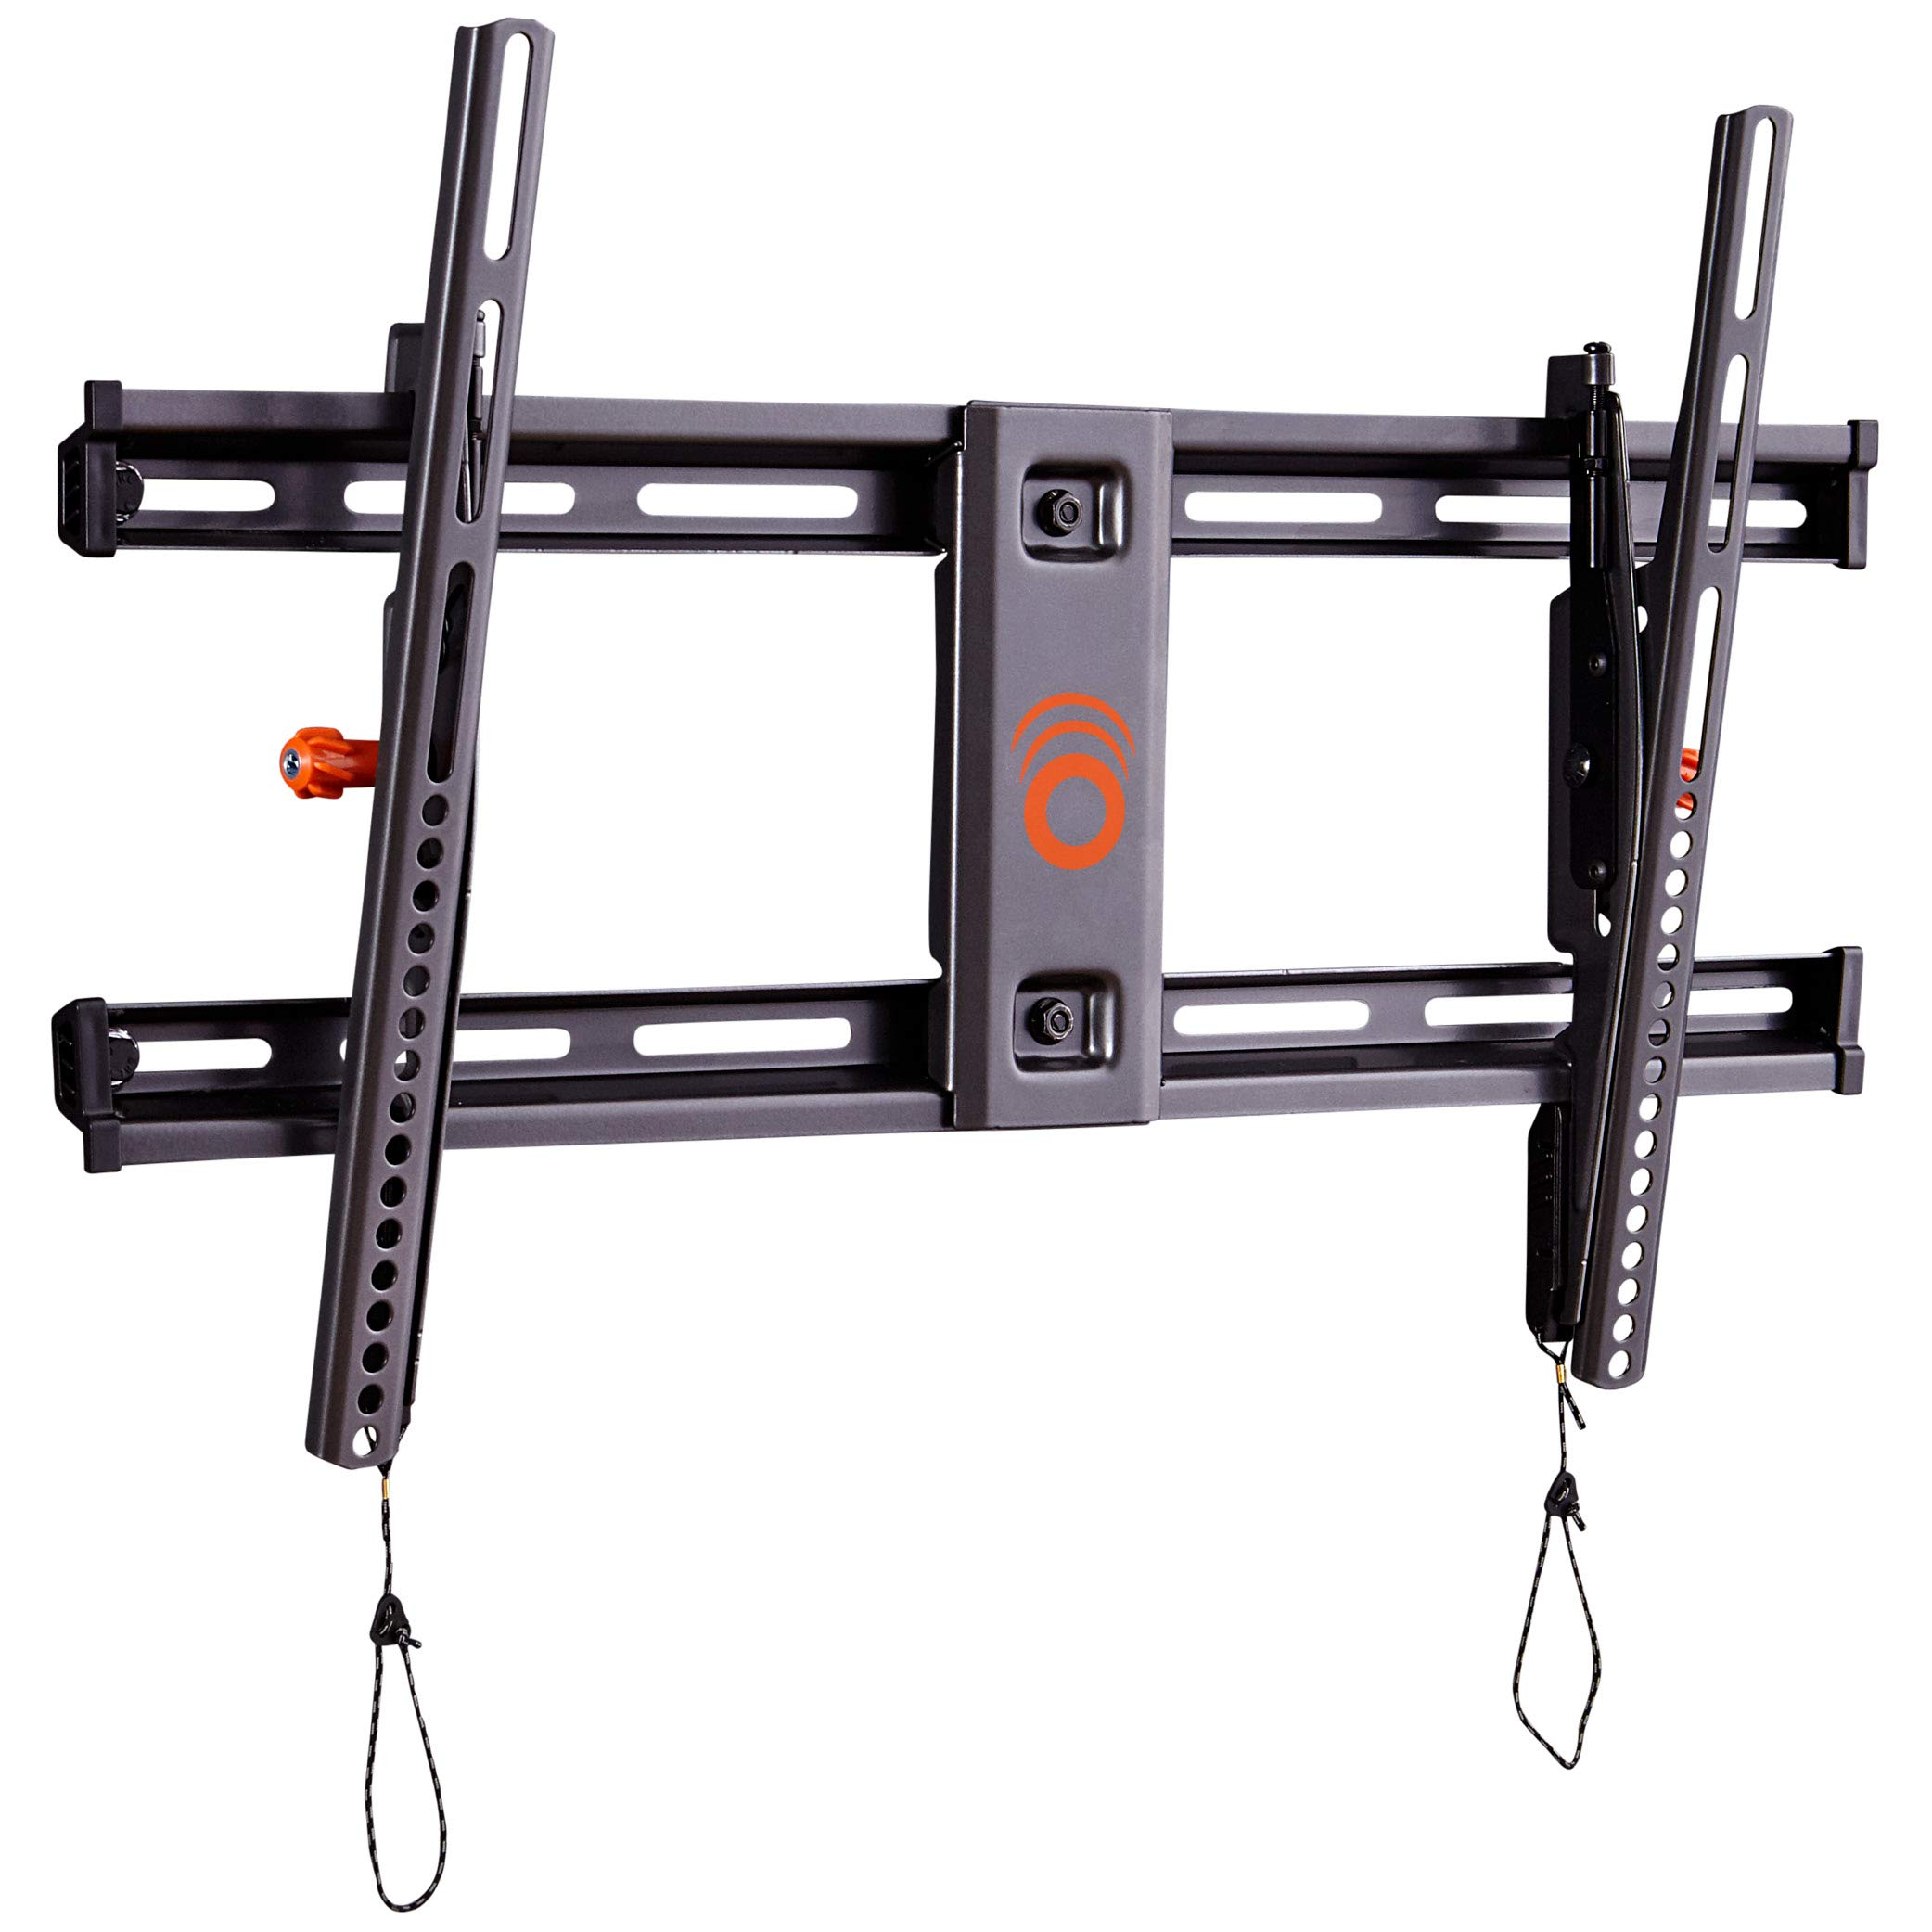 ECHOGEAR Tilting TV Wall Mount with Low Profile Design for 40'' - 82'' TVs - Eliminate Glare with 10º of Smooth Tilt - Slides to Center Between Studs & Can Be Leveled After Install - 2019 Upgrade by ECHOGEAR